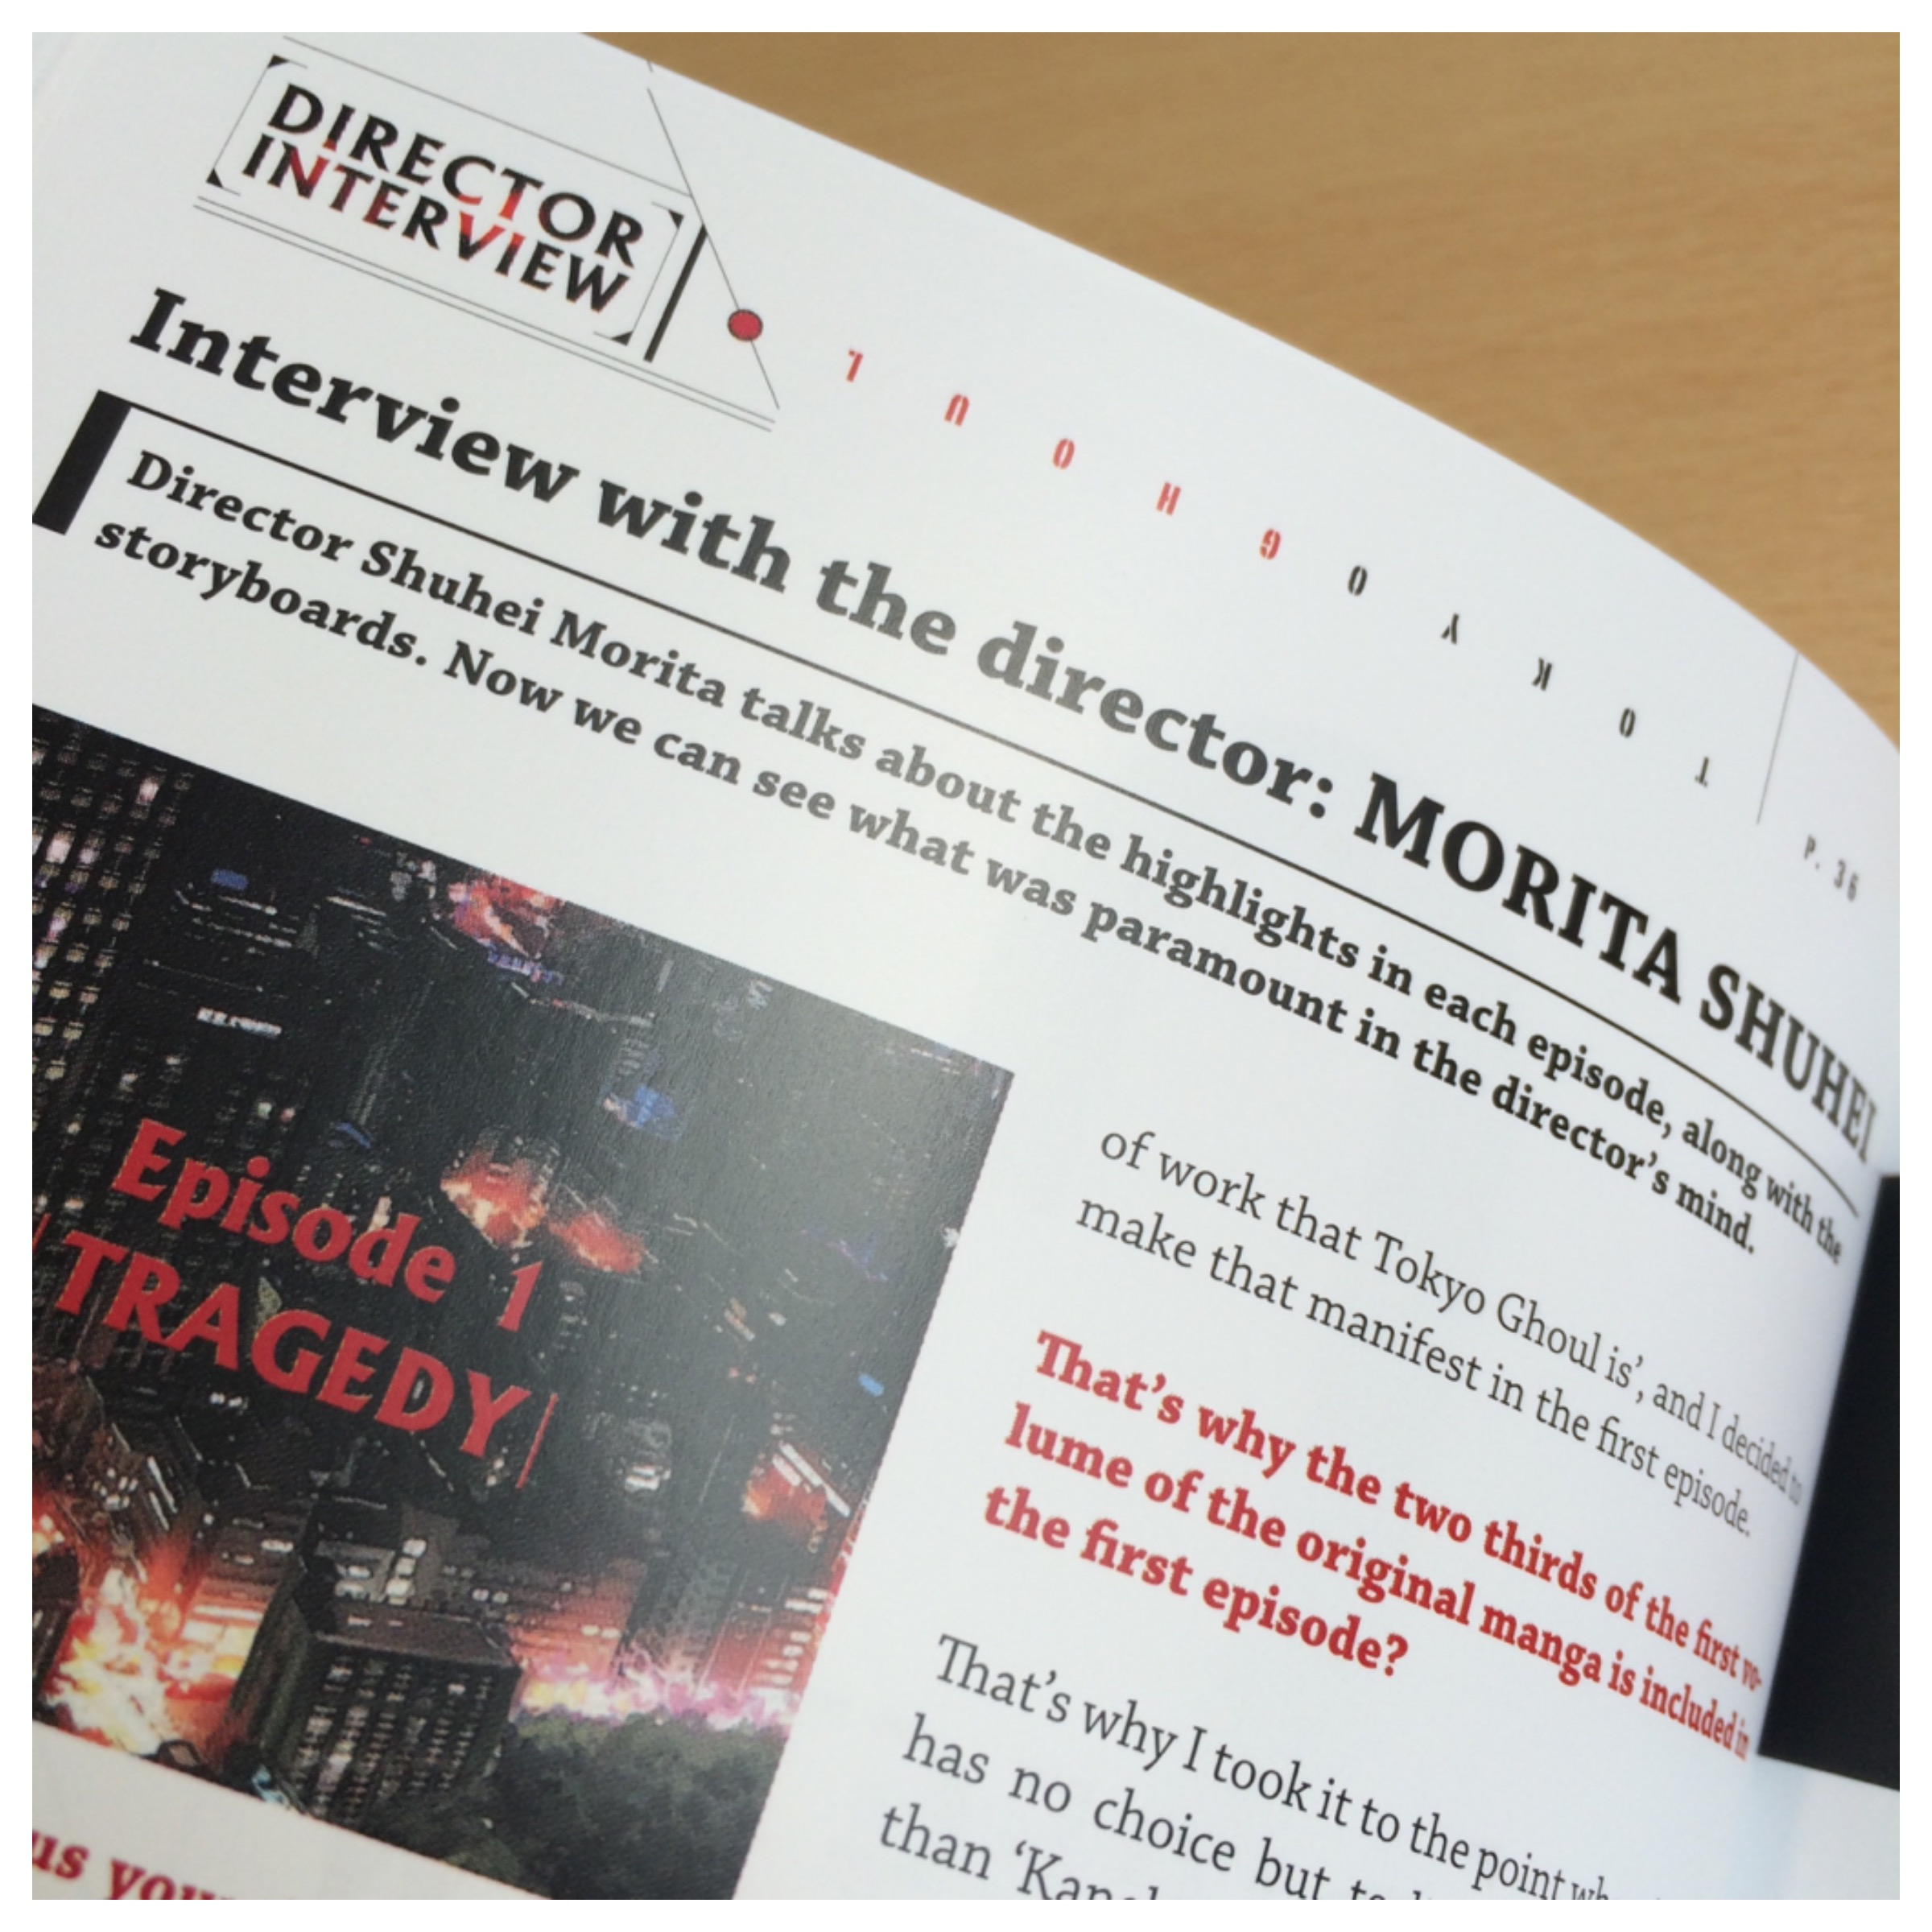 This section has a in-depth interview about the series with Director, Shuhei Morita